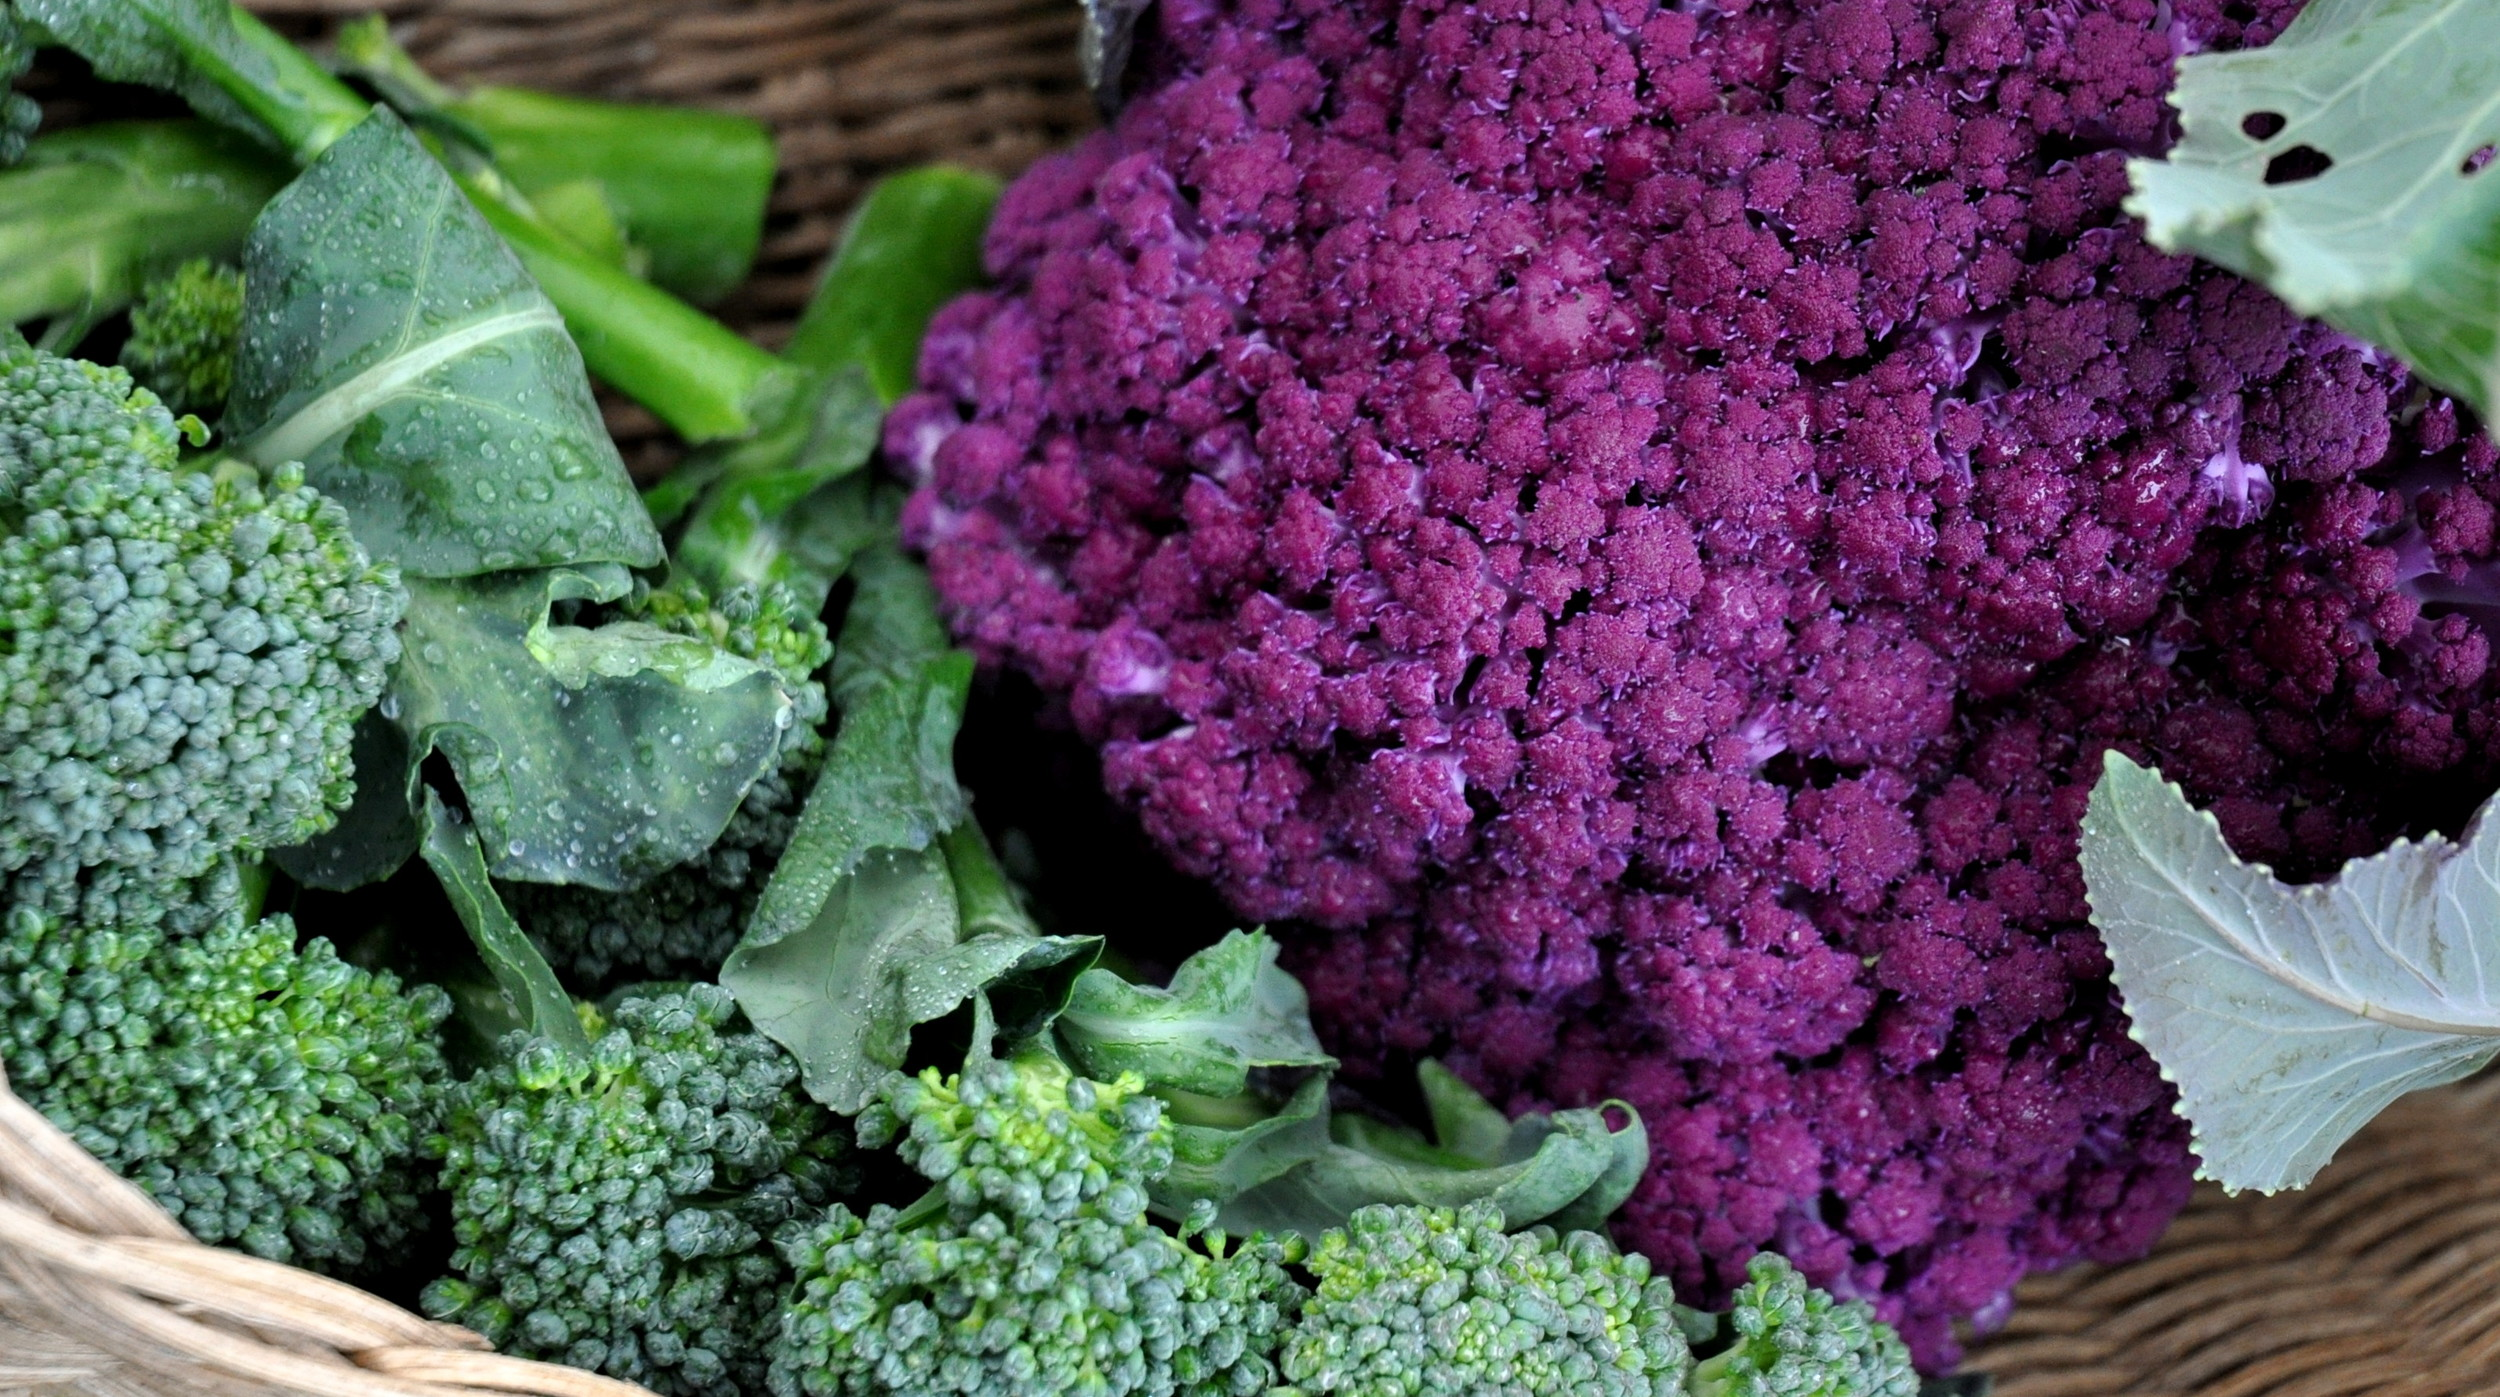 Broccoli and purple cauliflower from Seattle Youth Garden Works. Photo copyright 2013 by Zachary D. Lyons.